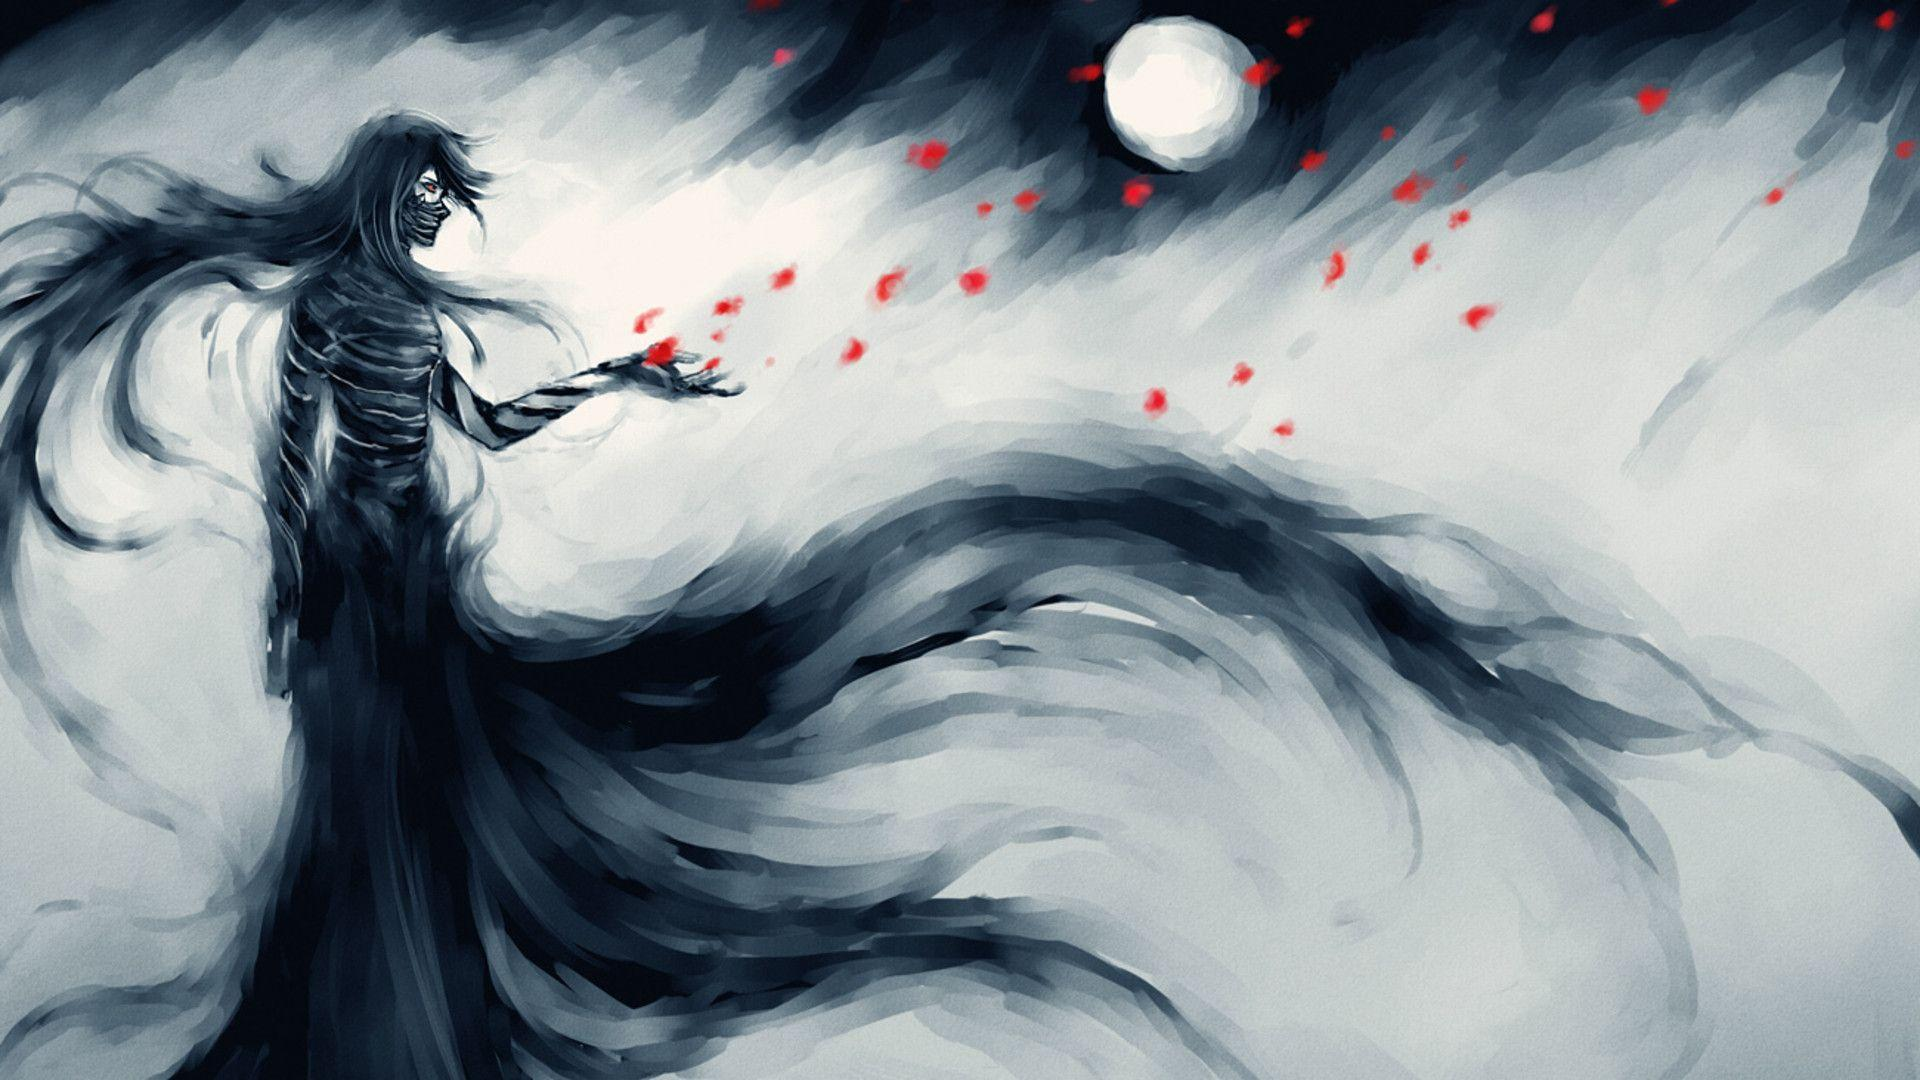 bleach anime wallpapers 1920x1080 5717 wallpaper cool